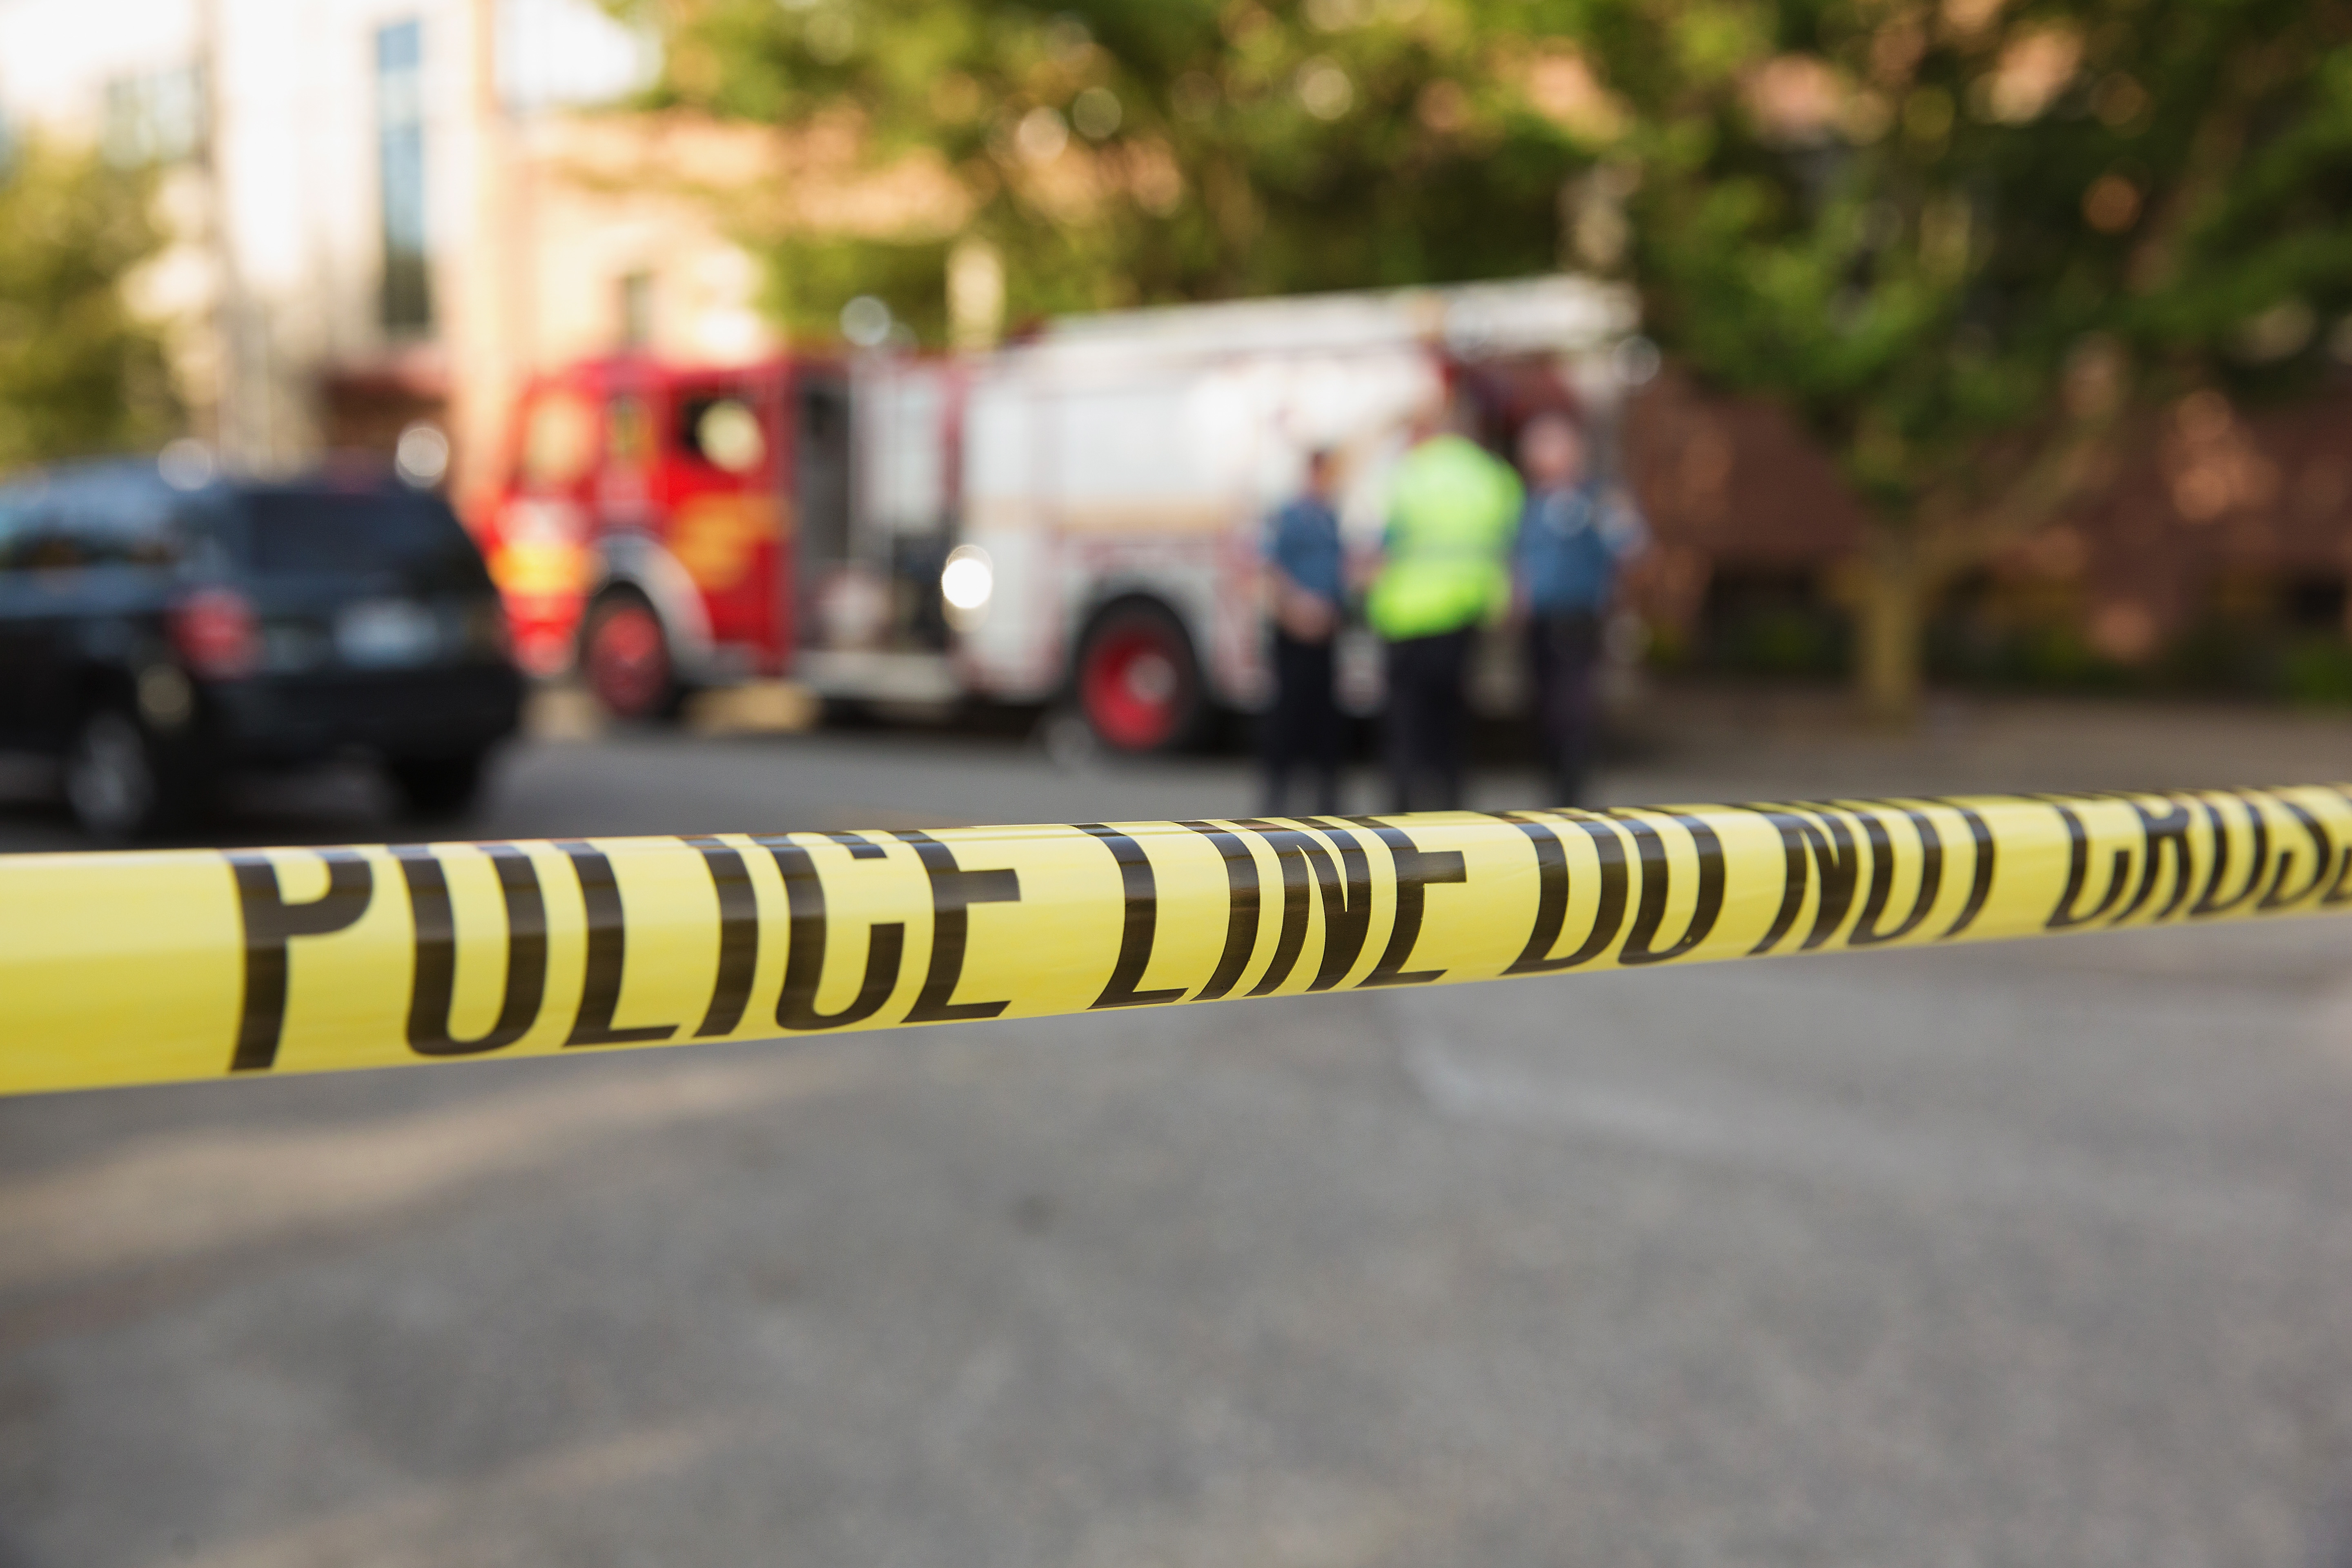 Police tape marks a crime scene on June 5, 2014 in Seattle, Washington.